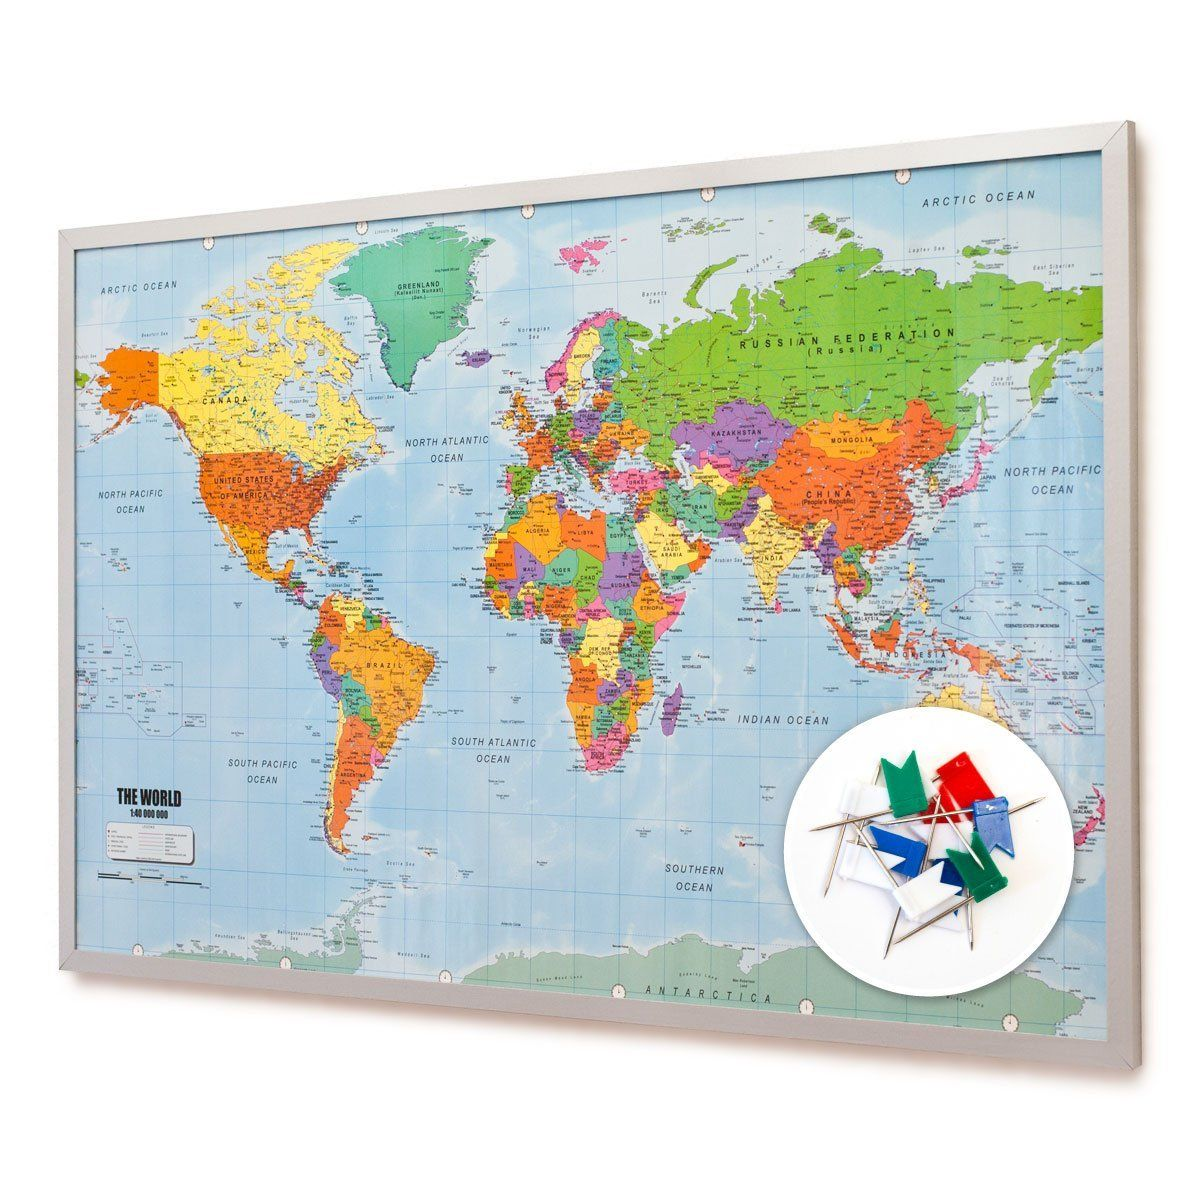 Pin board bulletin board xxl 90x60cm 2 sided world map and cork pin board bulletin board xxl 90x60cm 2 sided world map and cork memo board gumiabroncs Image collections